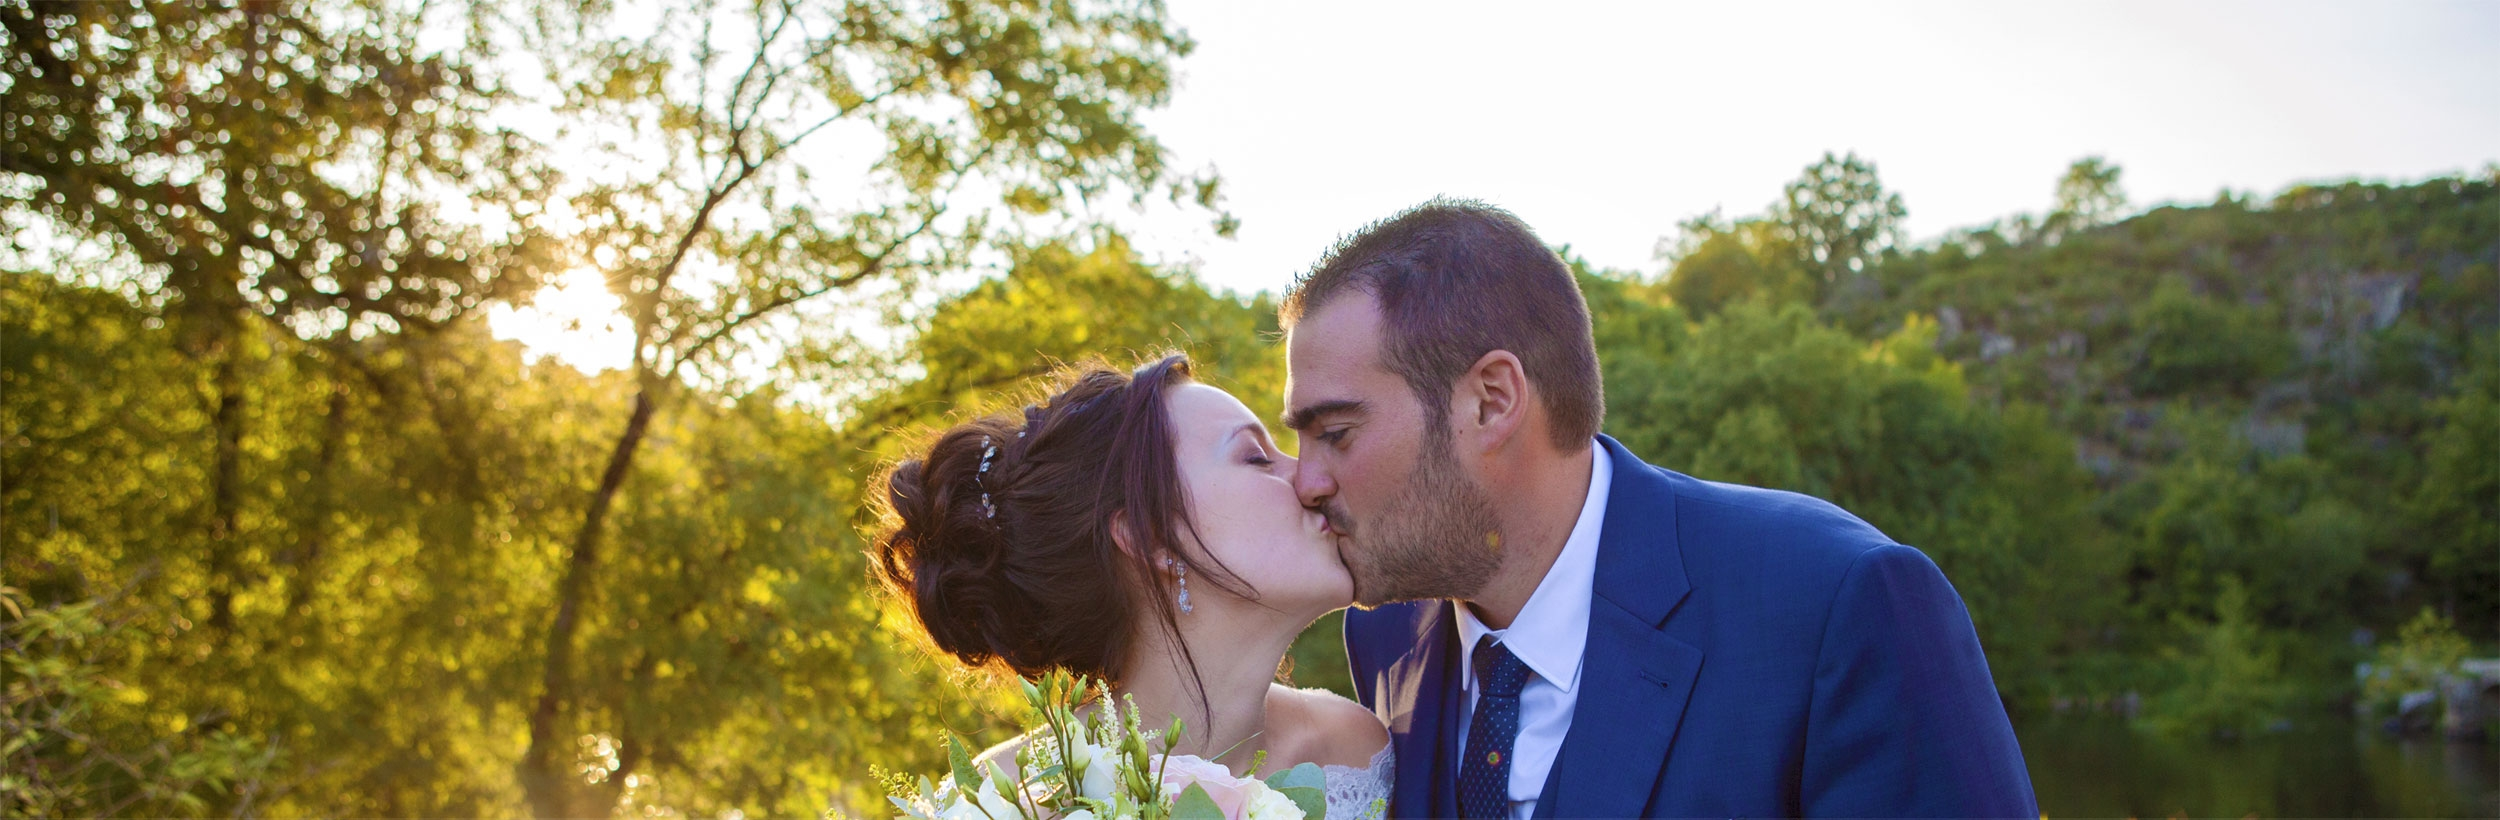 particuliers-evenements-mariage-oui-tiphaine&rudy-pagetop